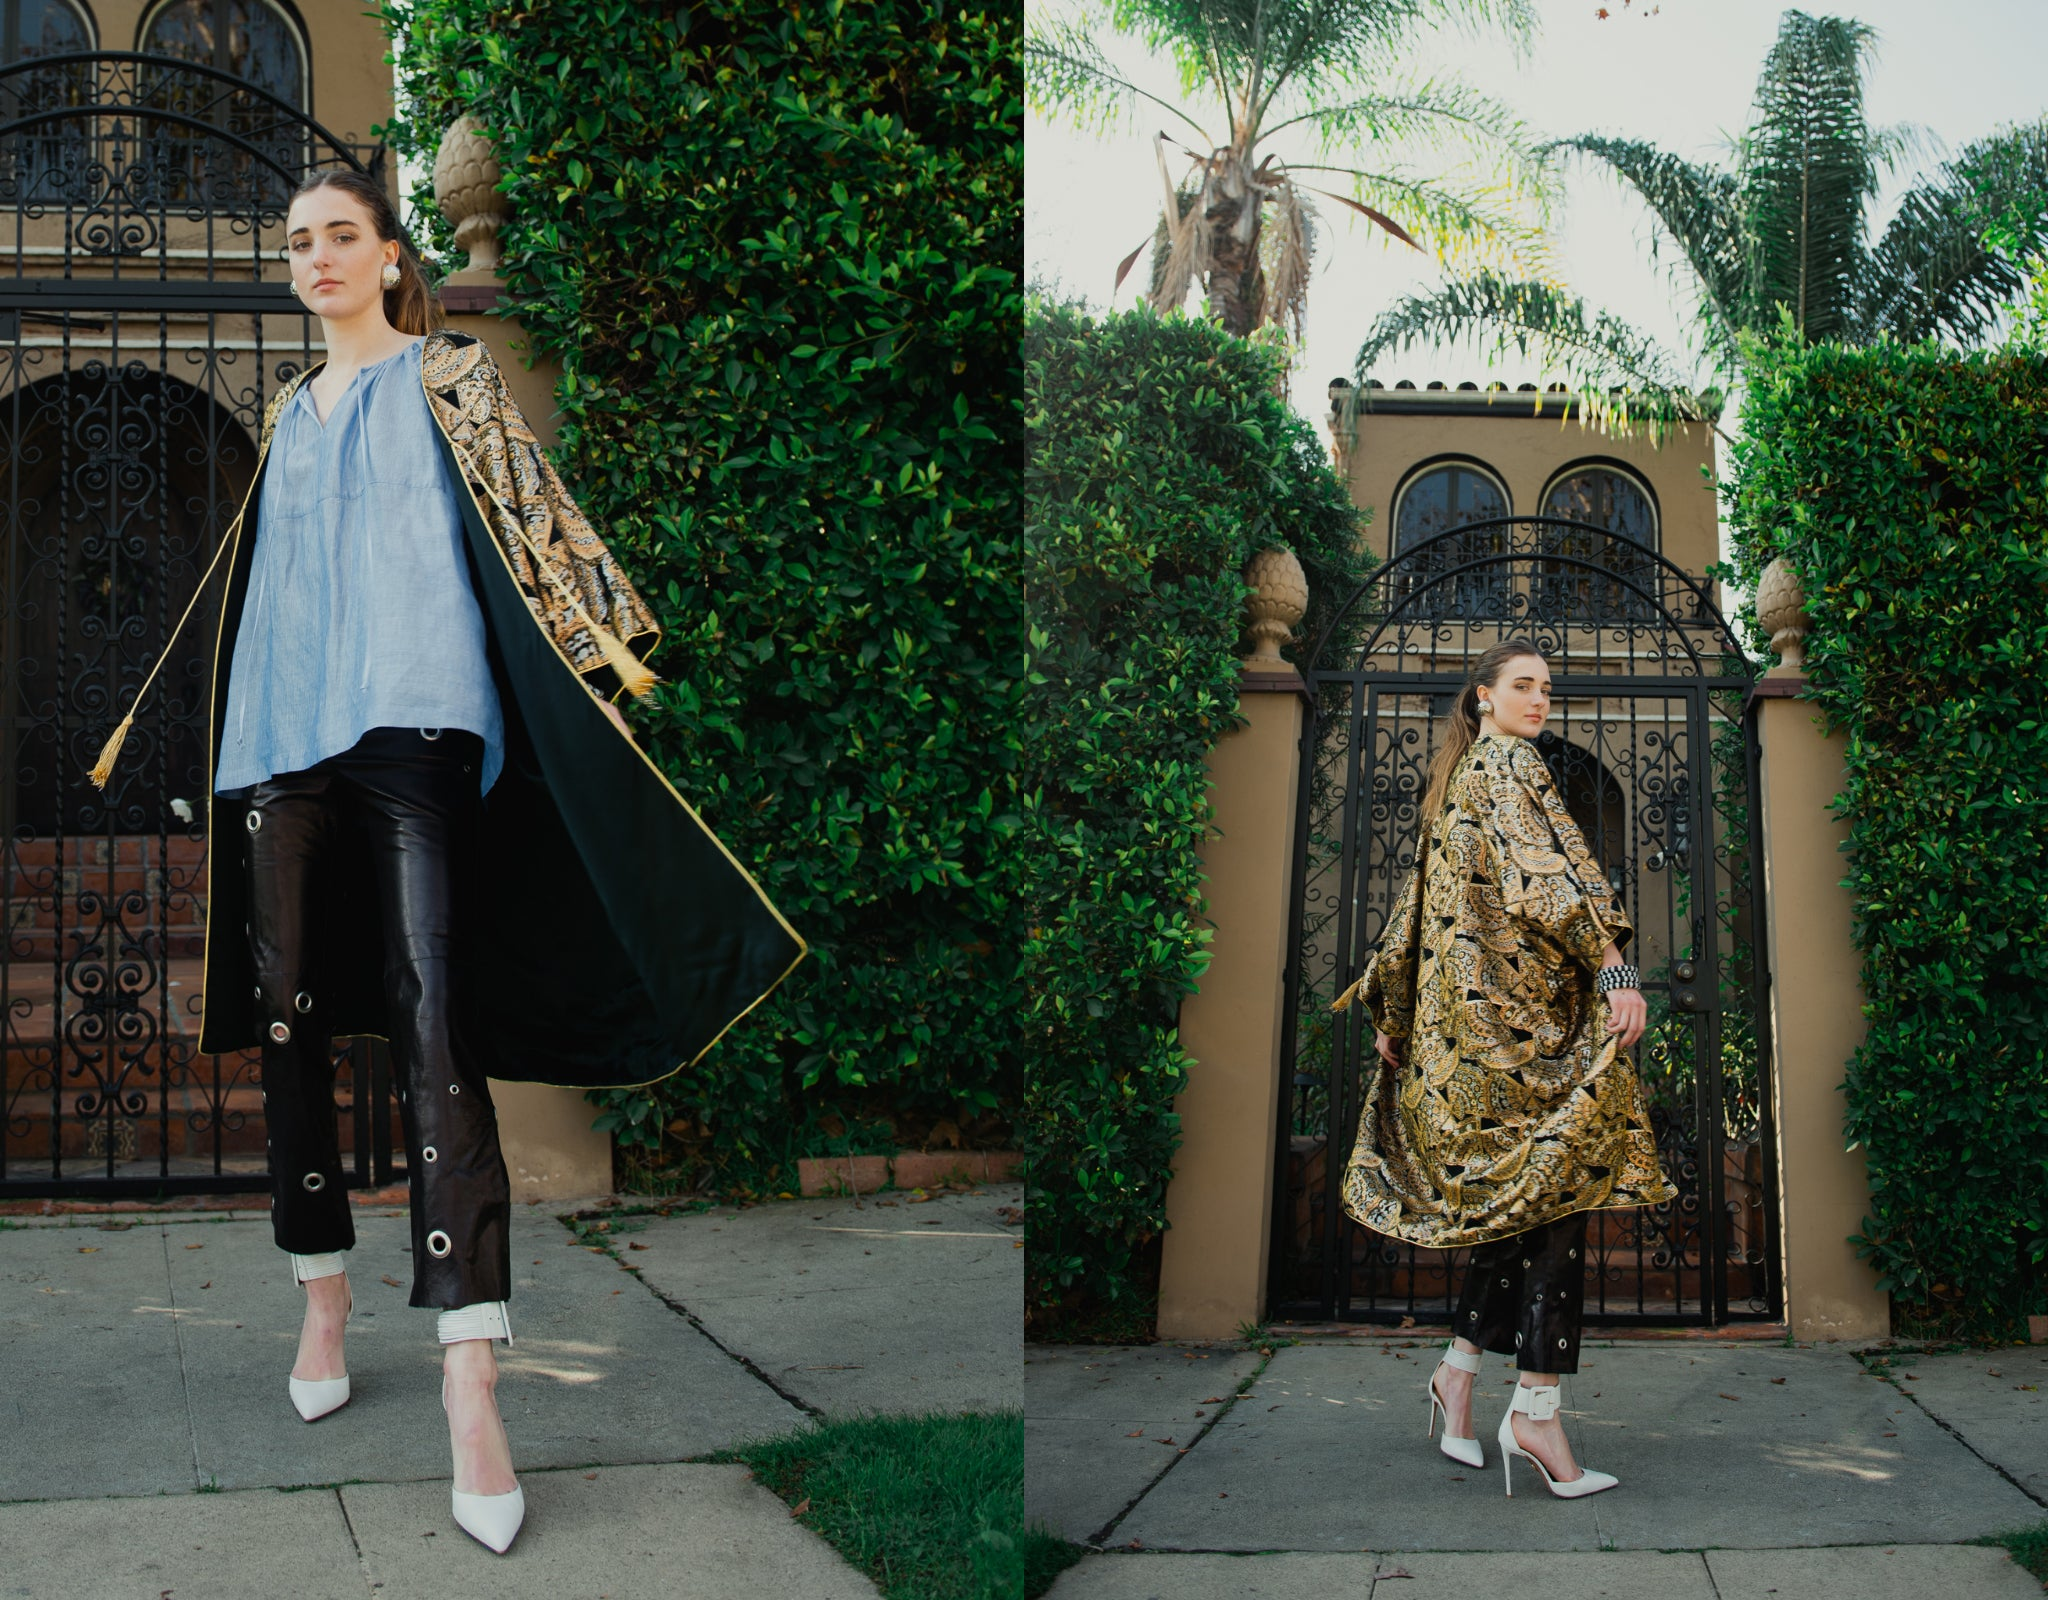 Girl in gold brocade Anthony Muto Cocoon coat and leather pants in front of gated shrubs